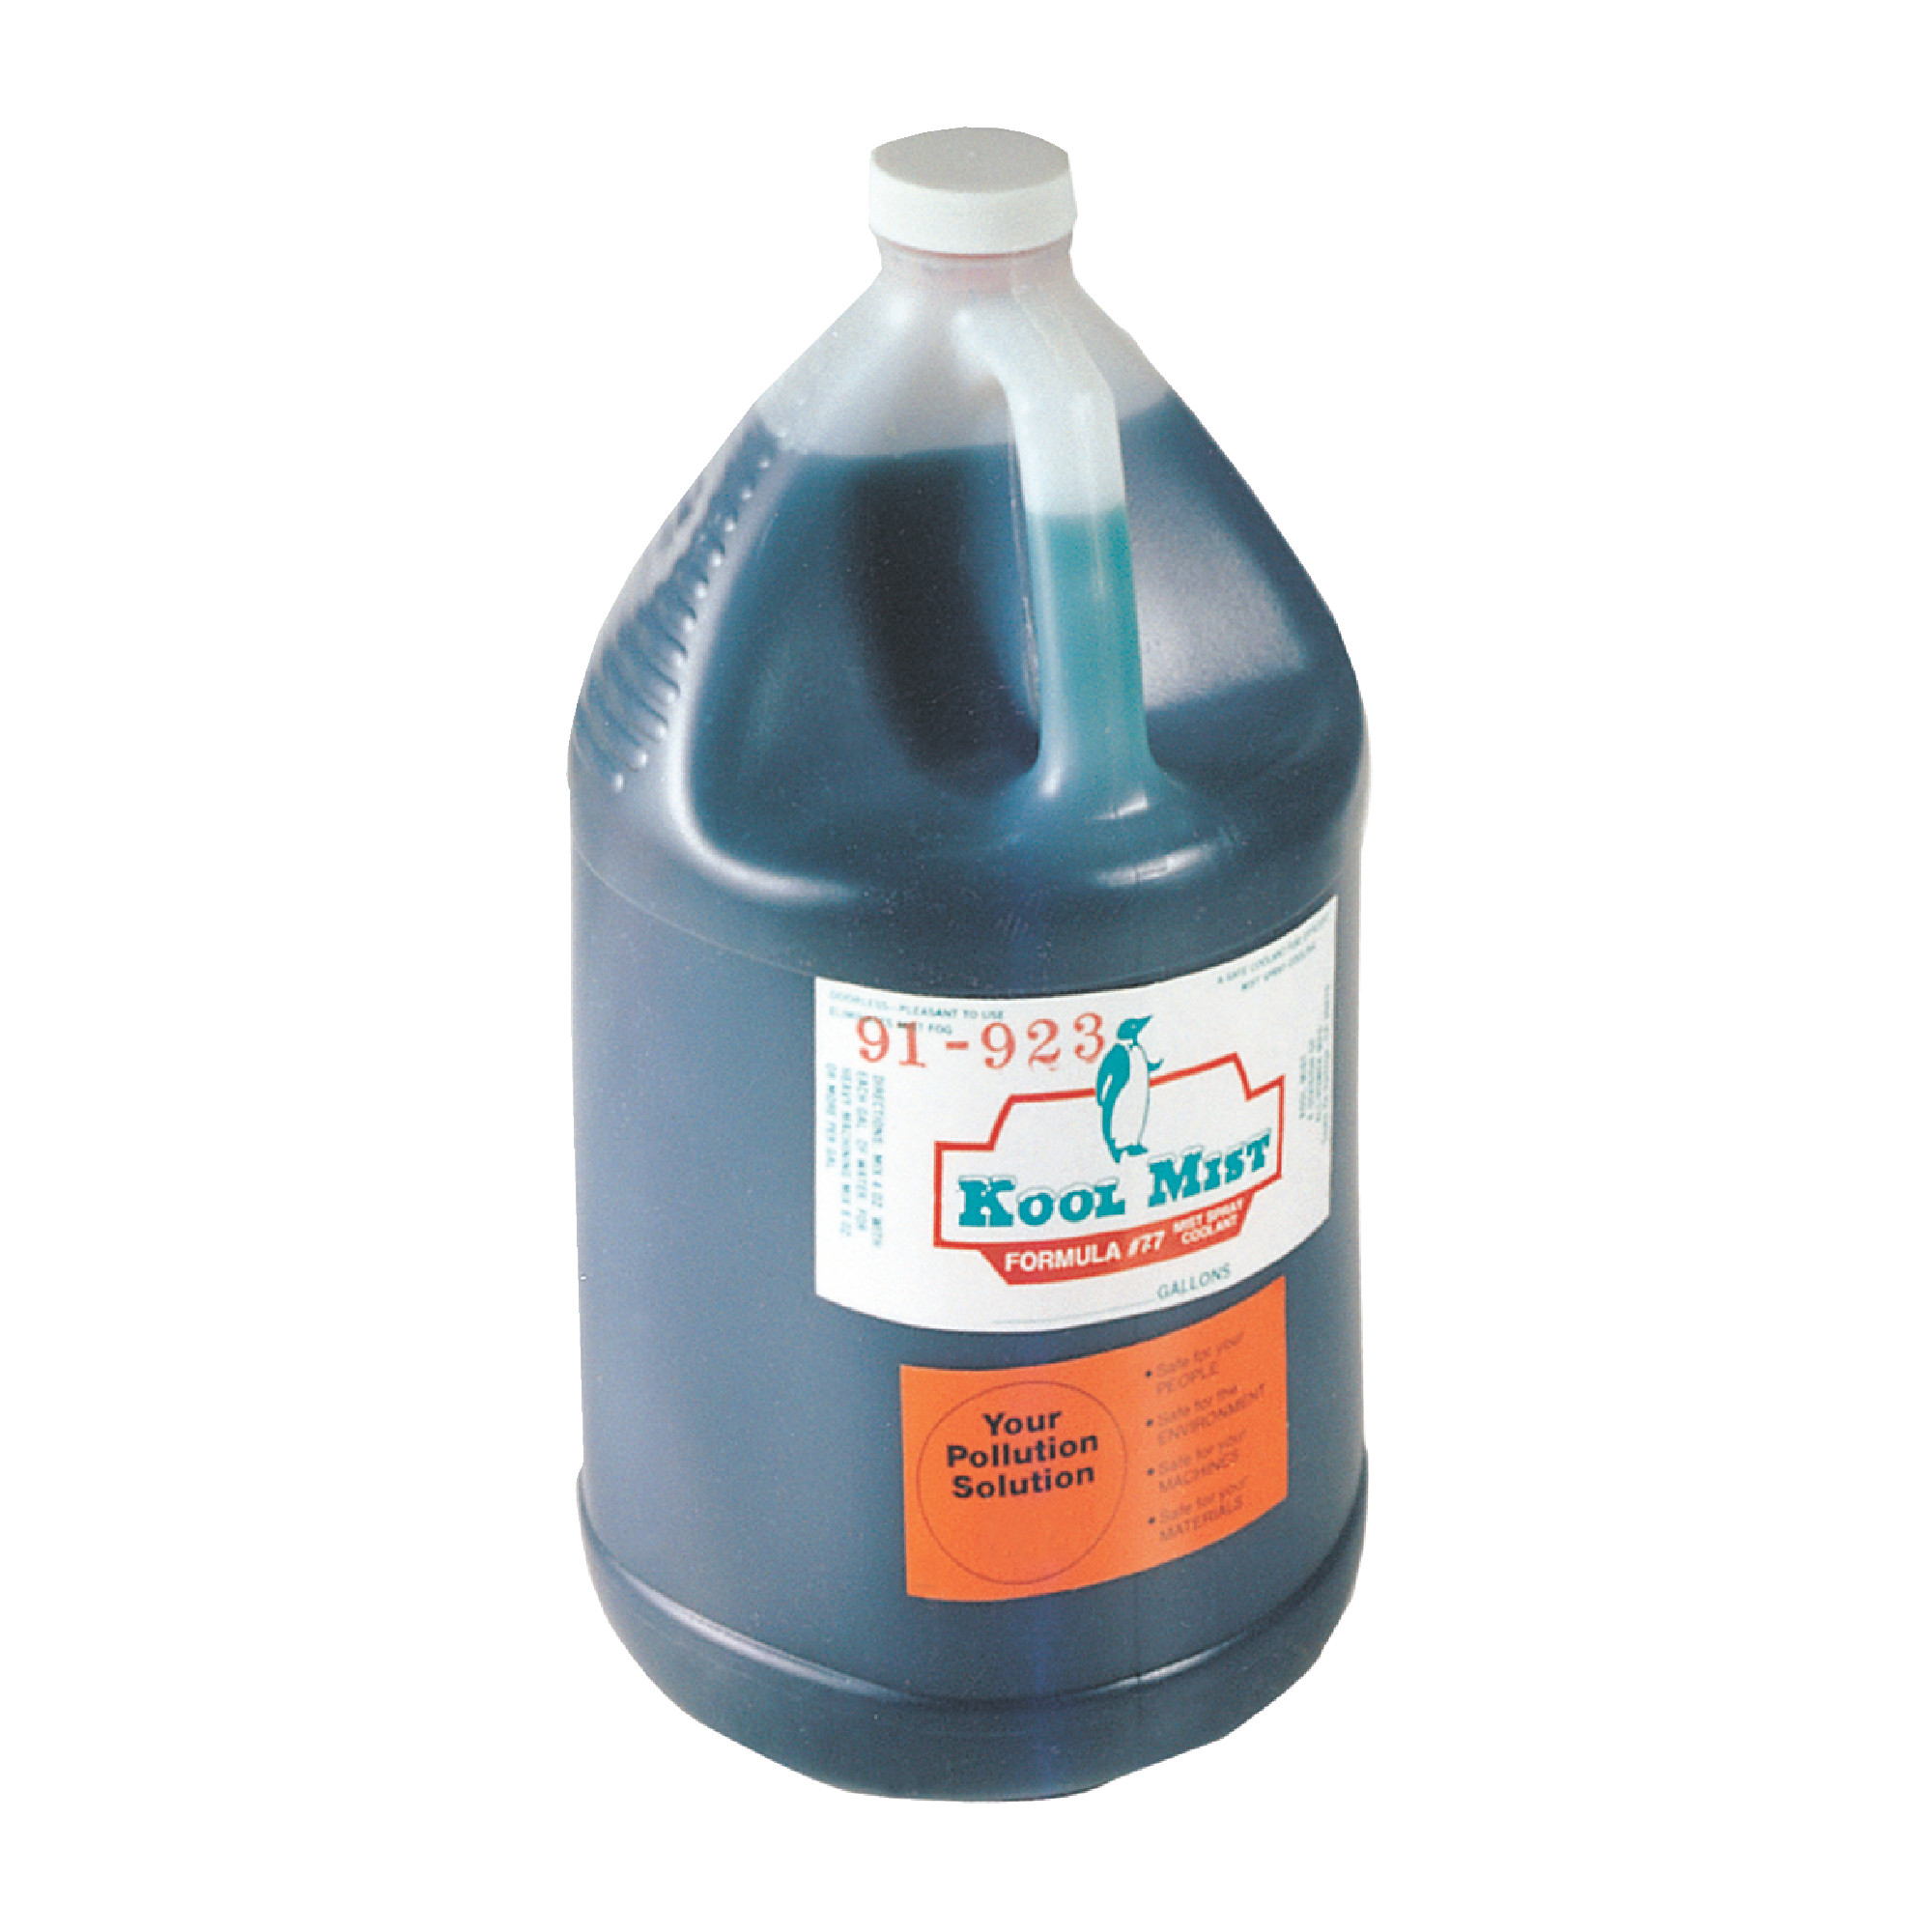 KOOL MIST - #77 Concentrated Coolant, 1 Gallon